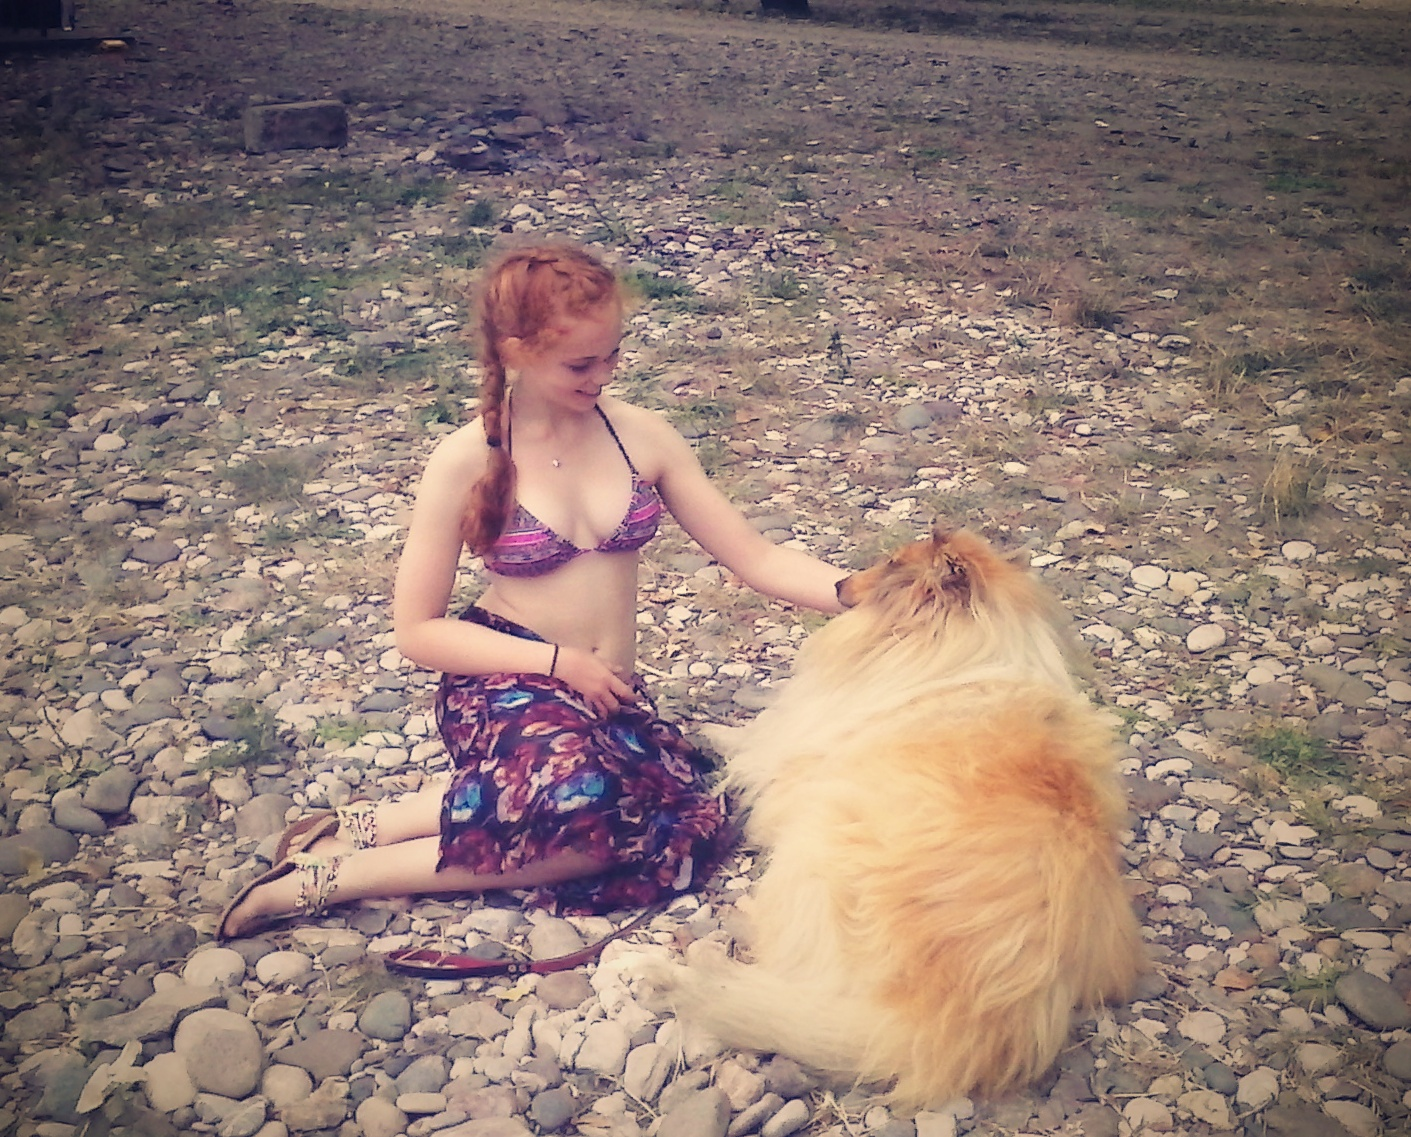 Zoe and Dog - Shared by Giulia